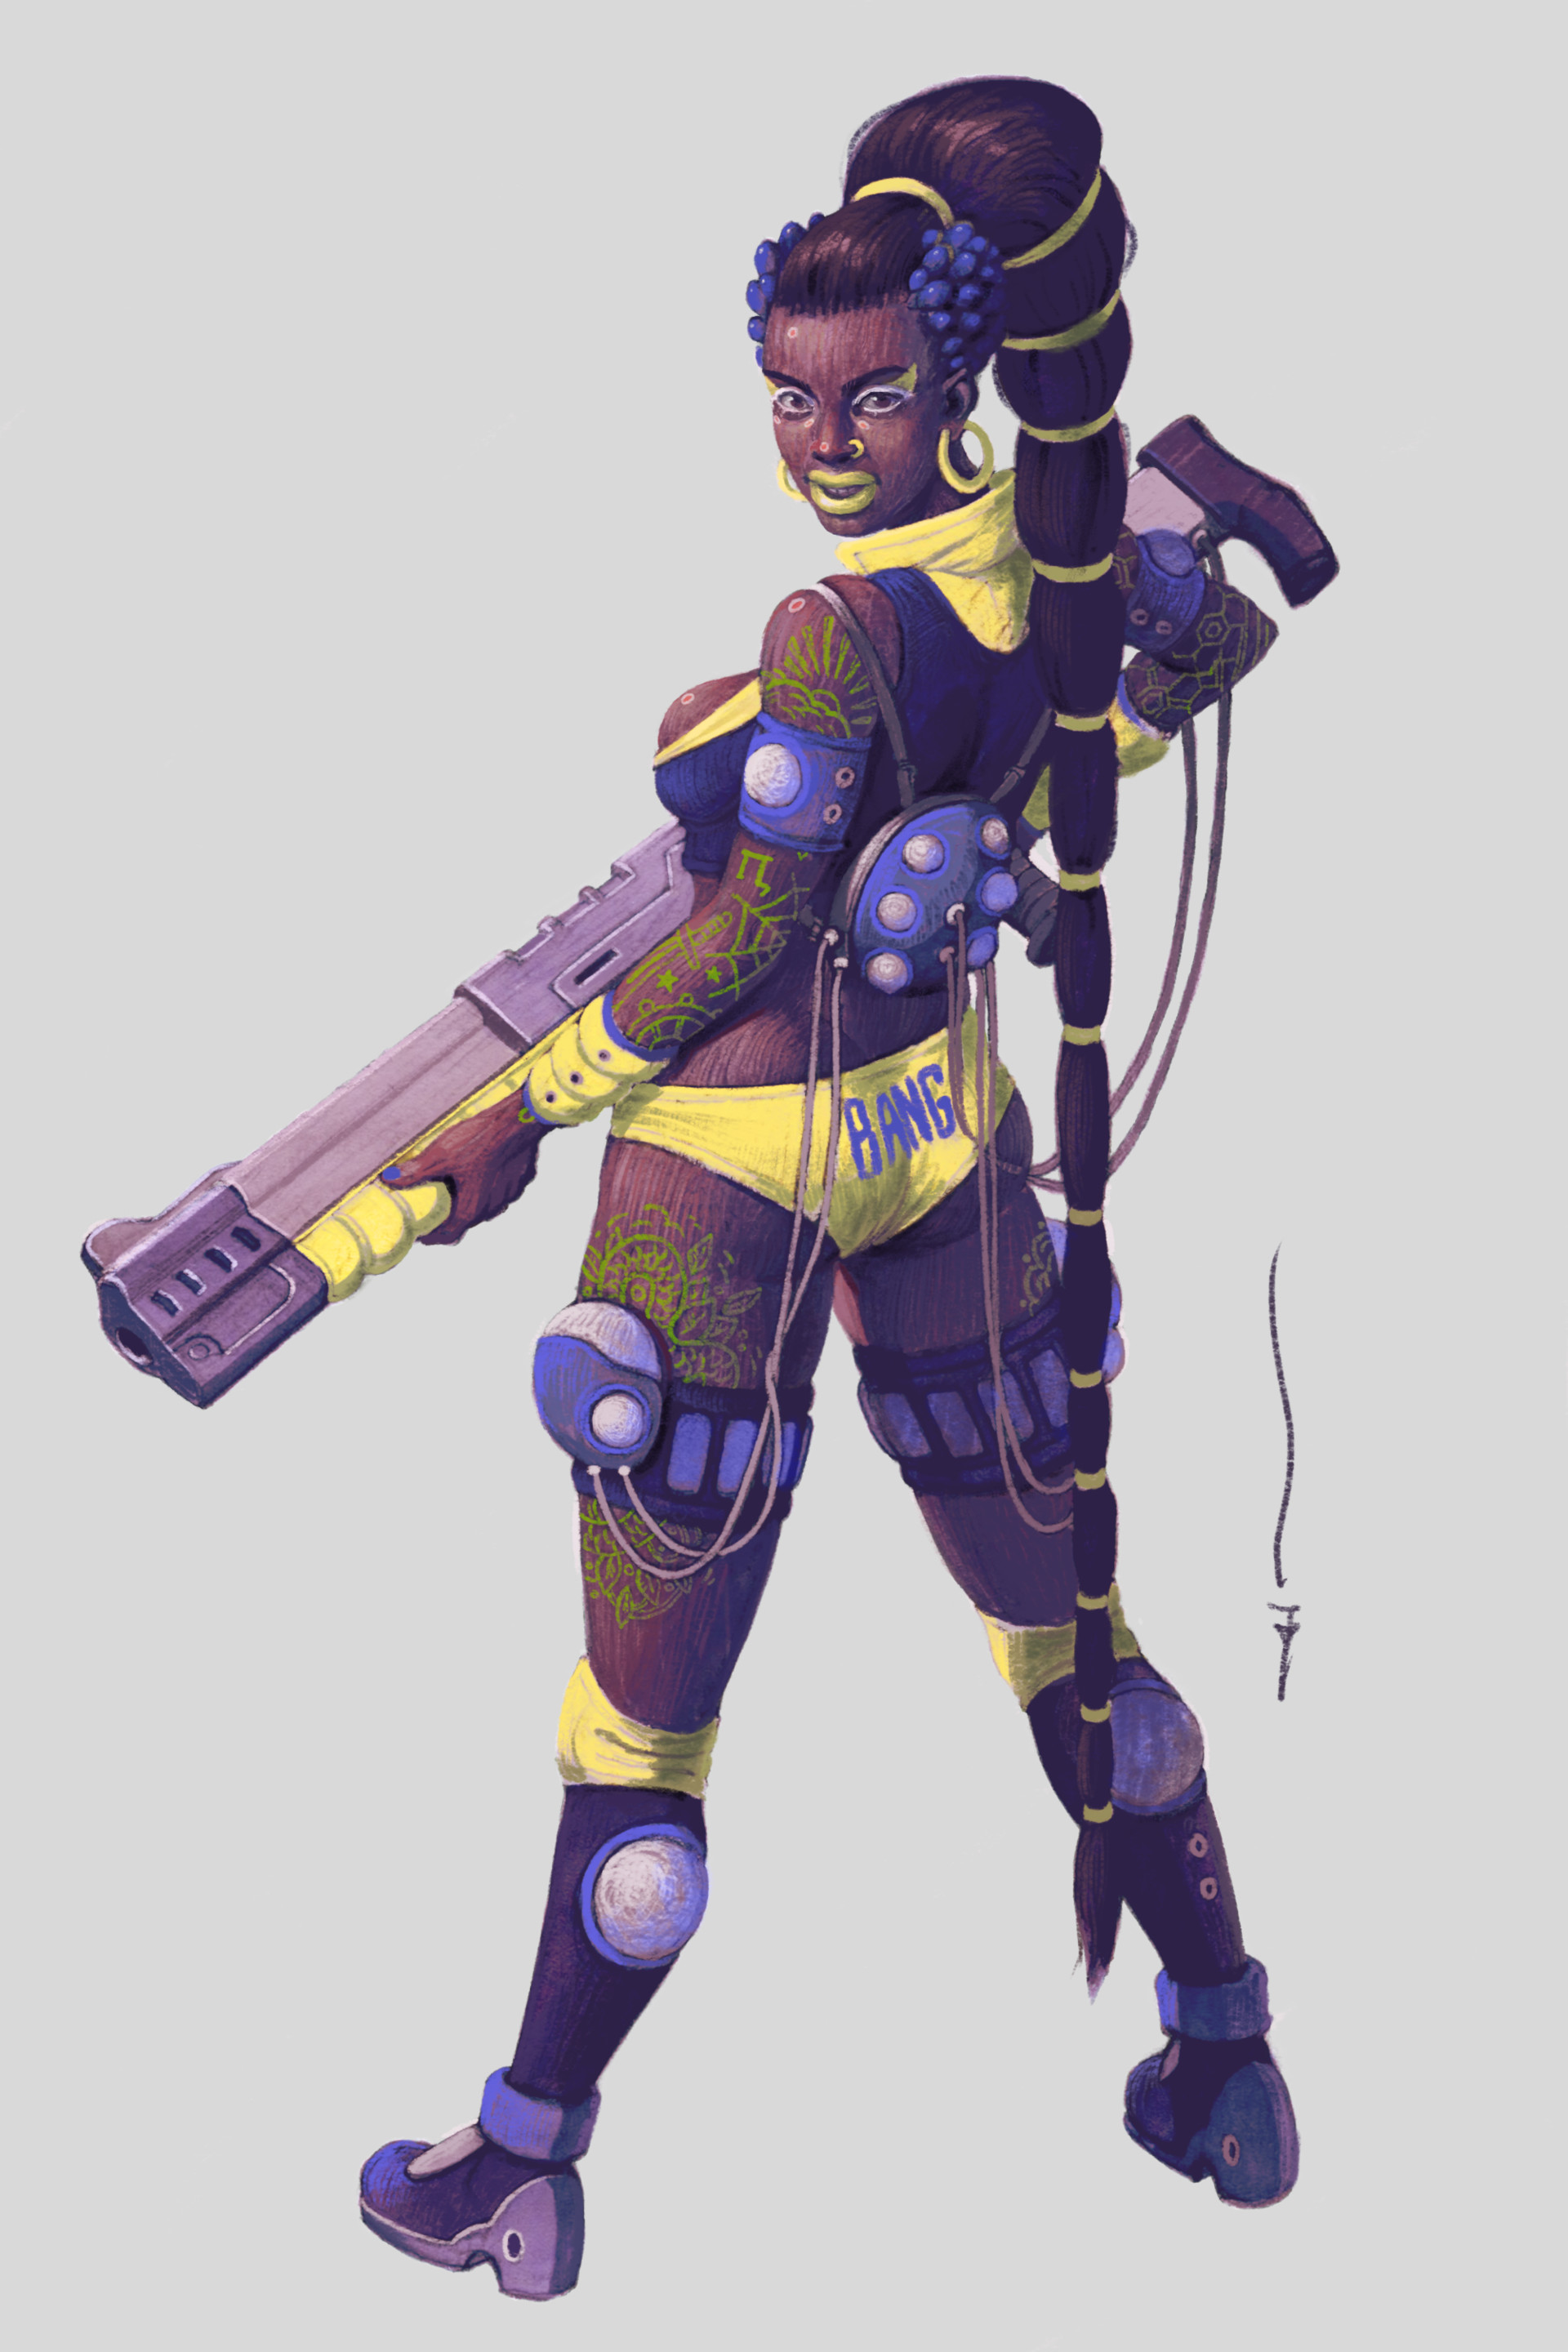 Dmitry skolzki acid riflegirl